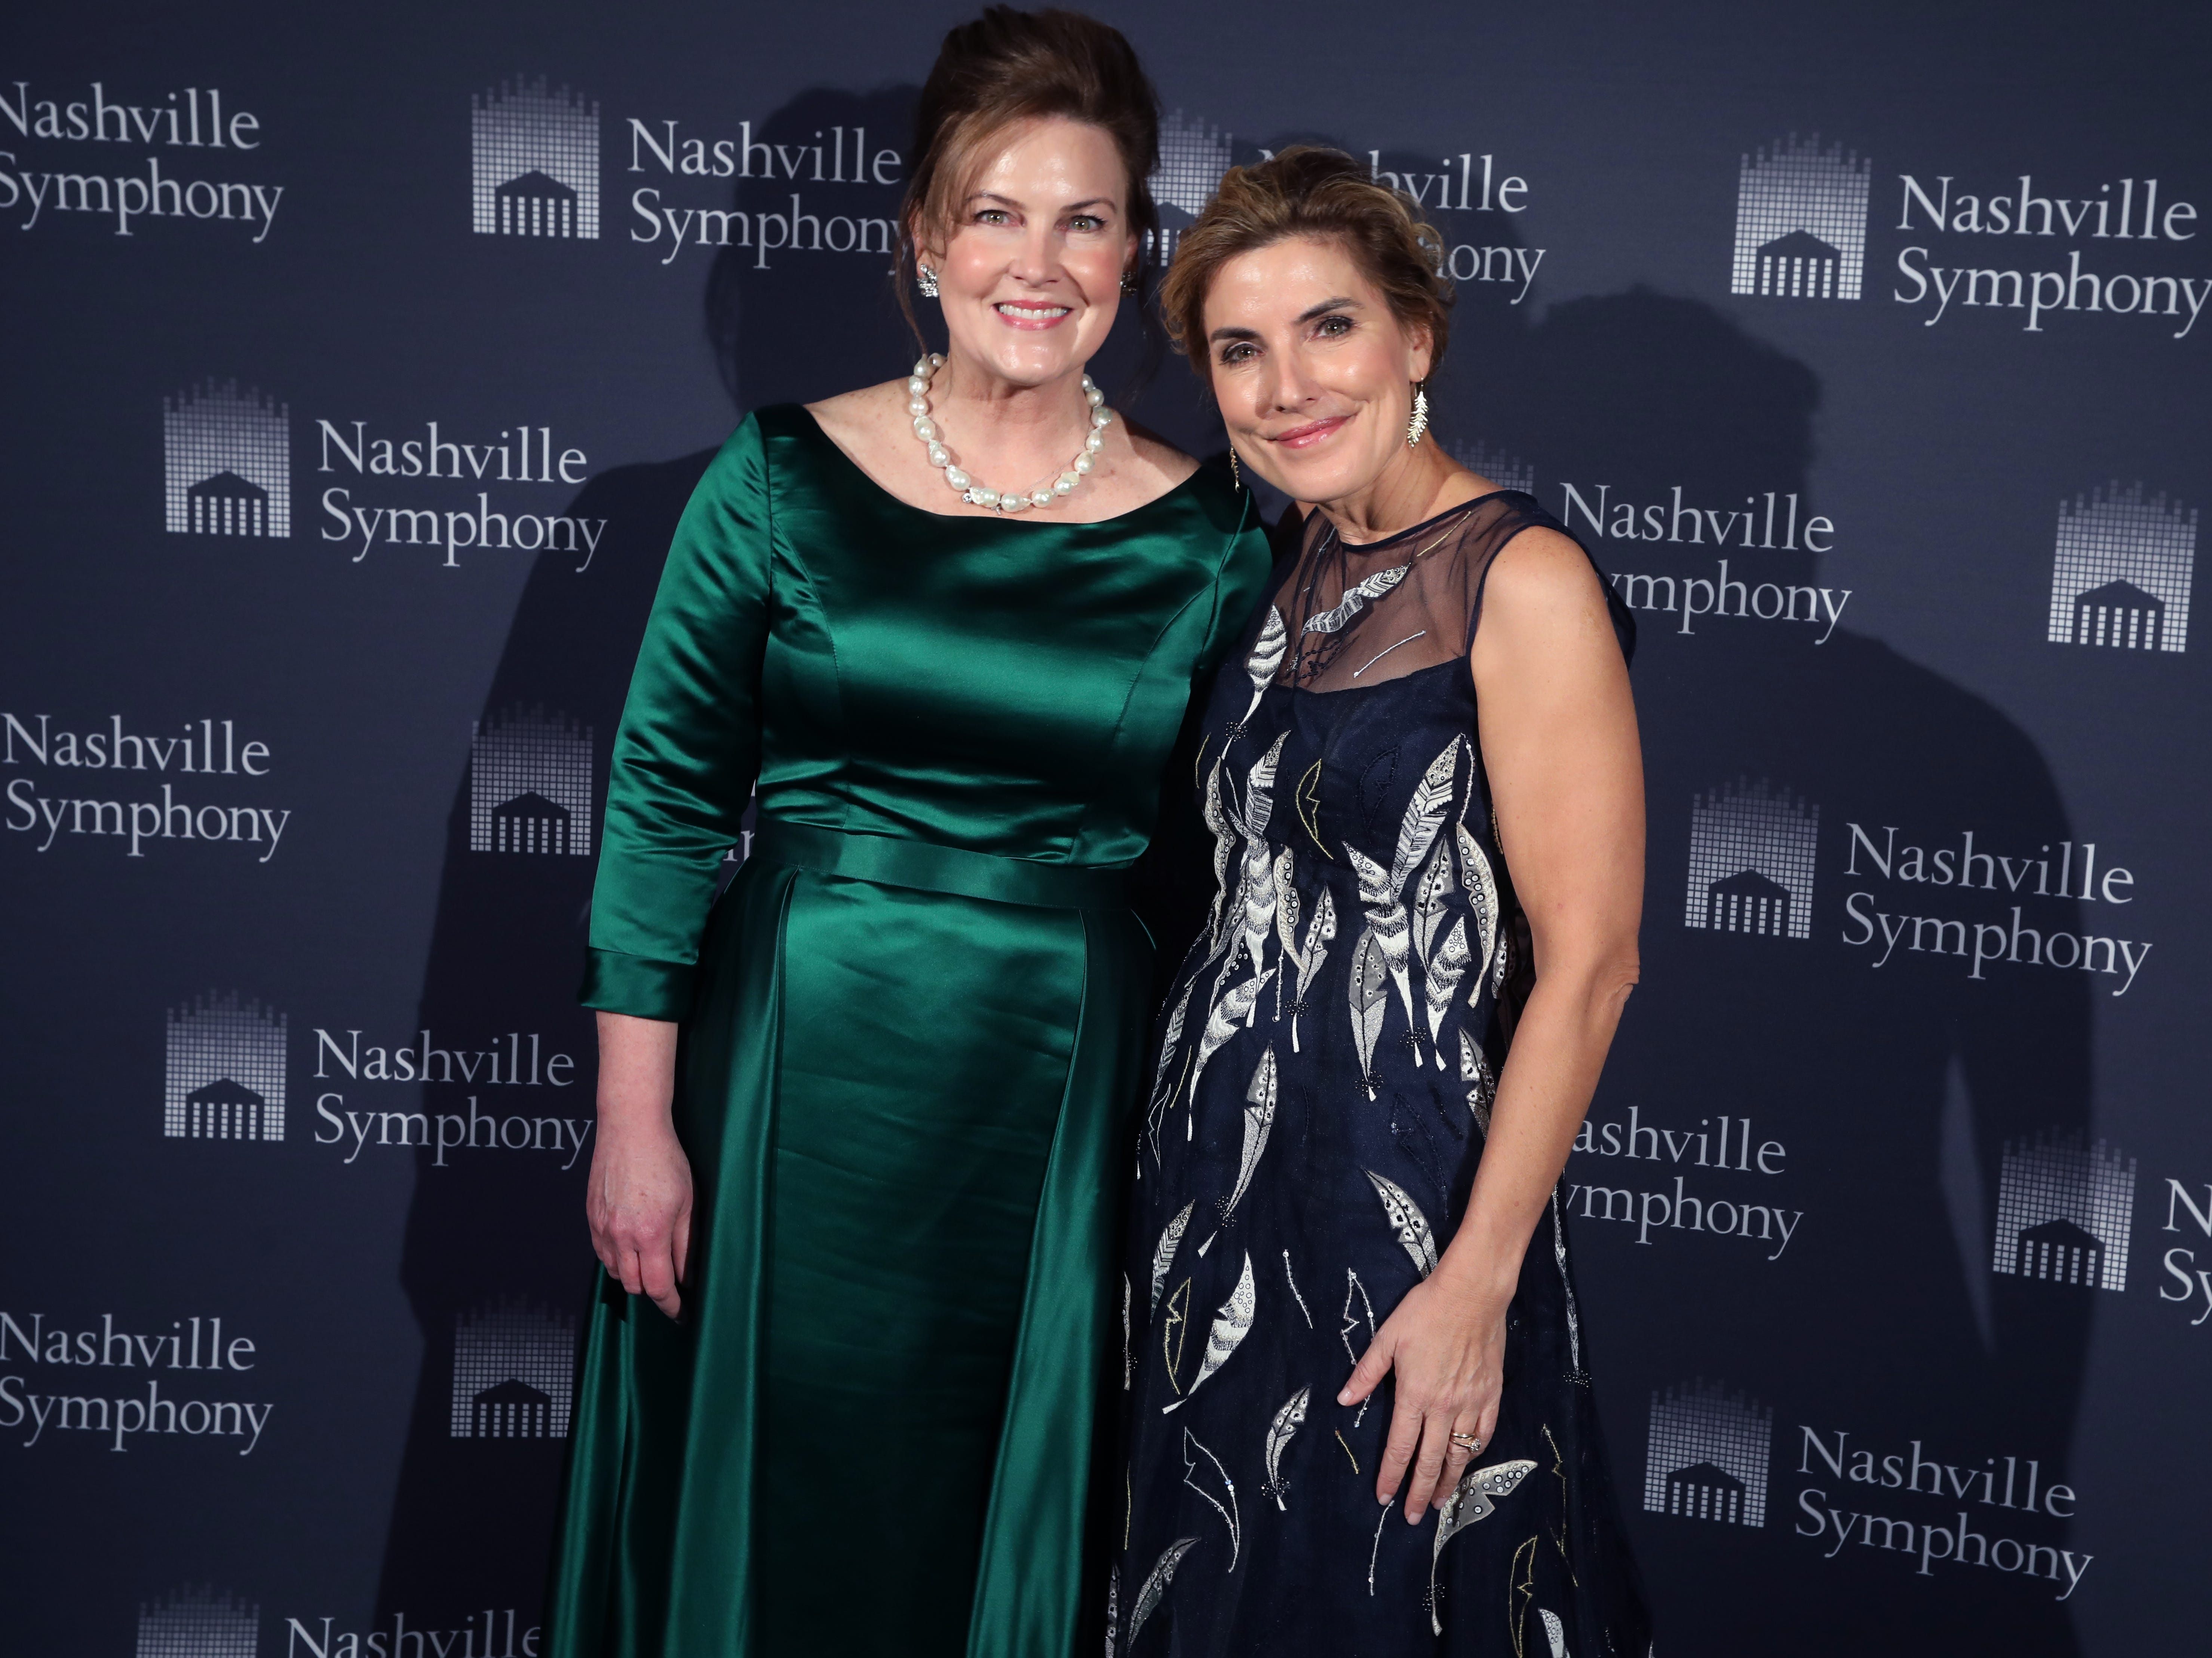 Chairmen Laurie Seabury and Katie Crumbo at the 34th annual Symphony Ball on Saturday, December 8, 2018, at Schermerhorn Symphony Center.